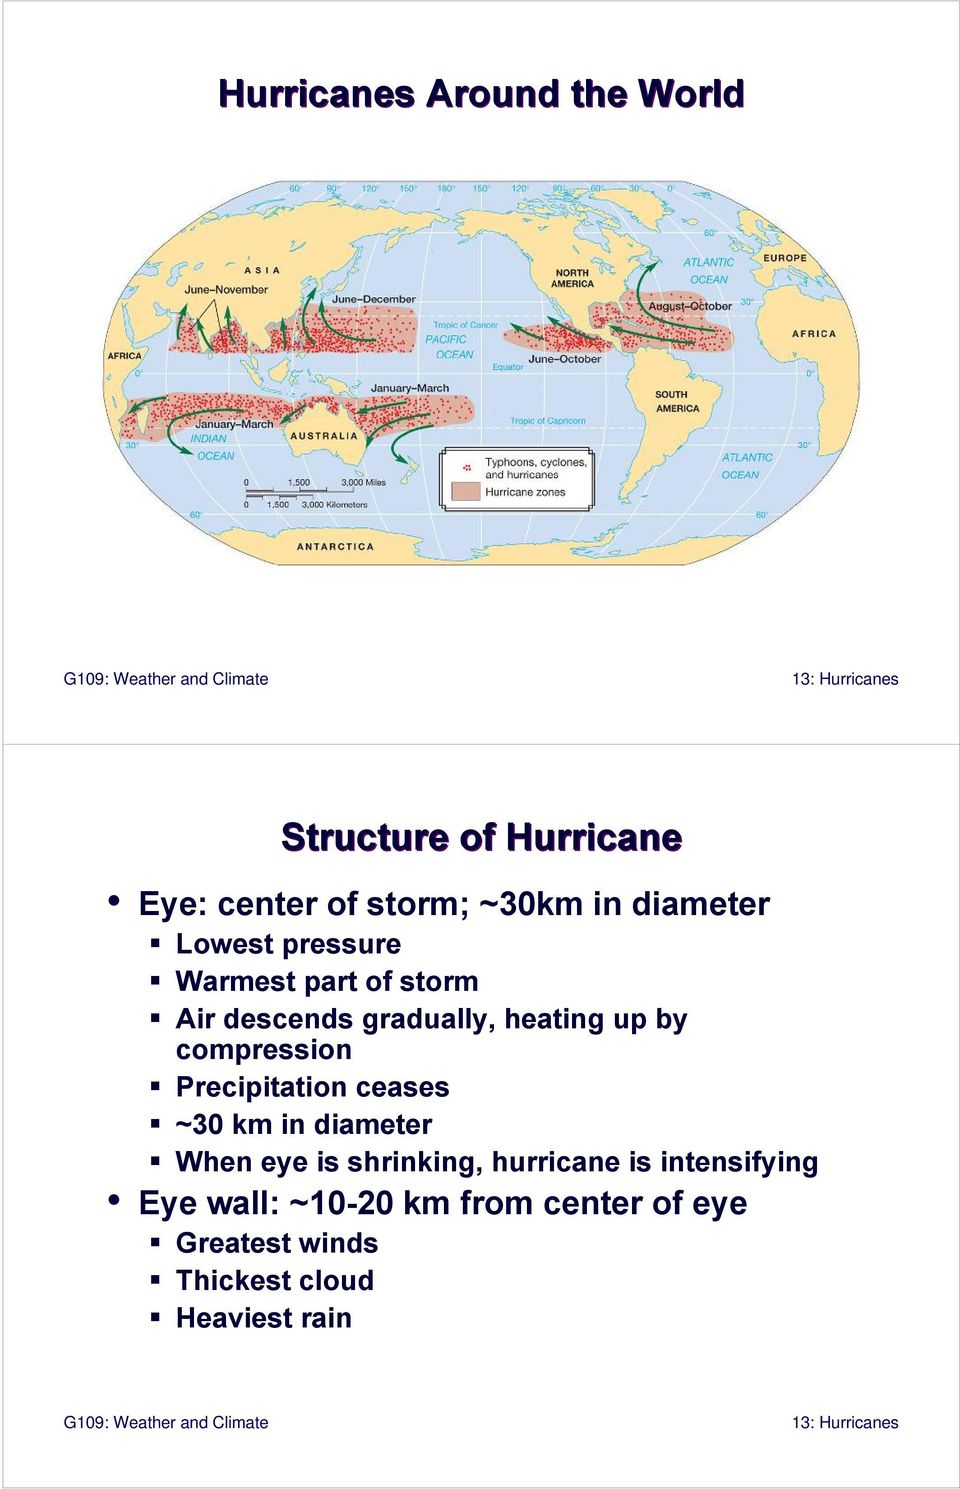 compression Precipitation ceases ~30 km in diameter When eye is shrinking, hurricane is